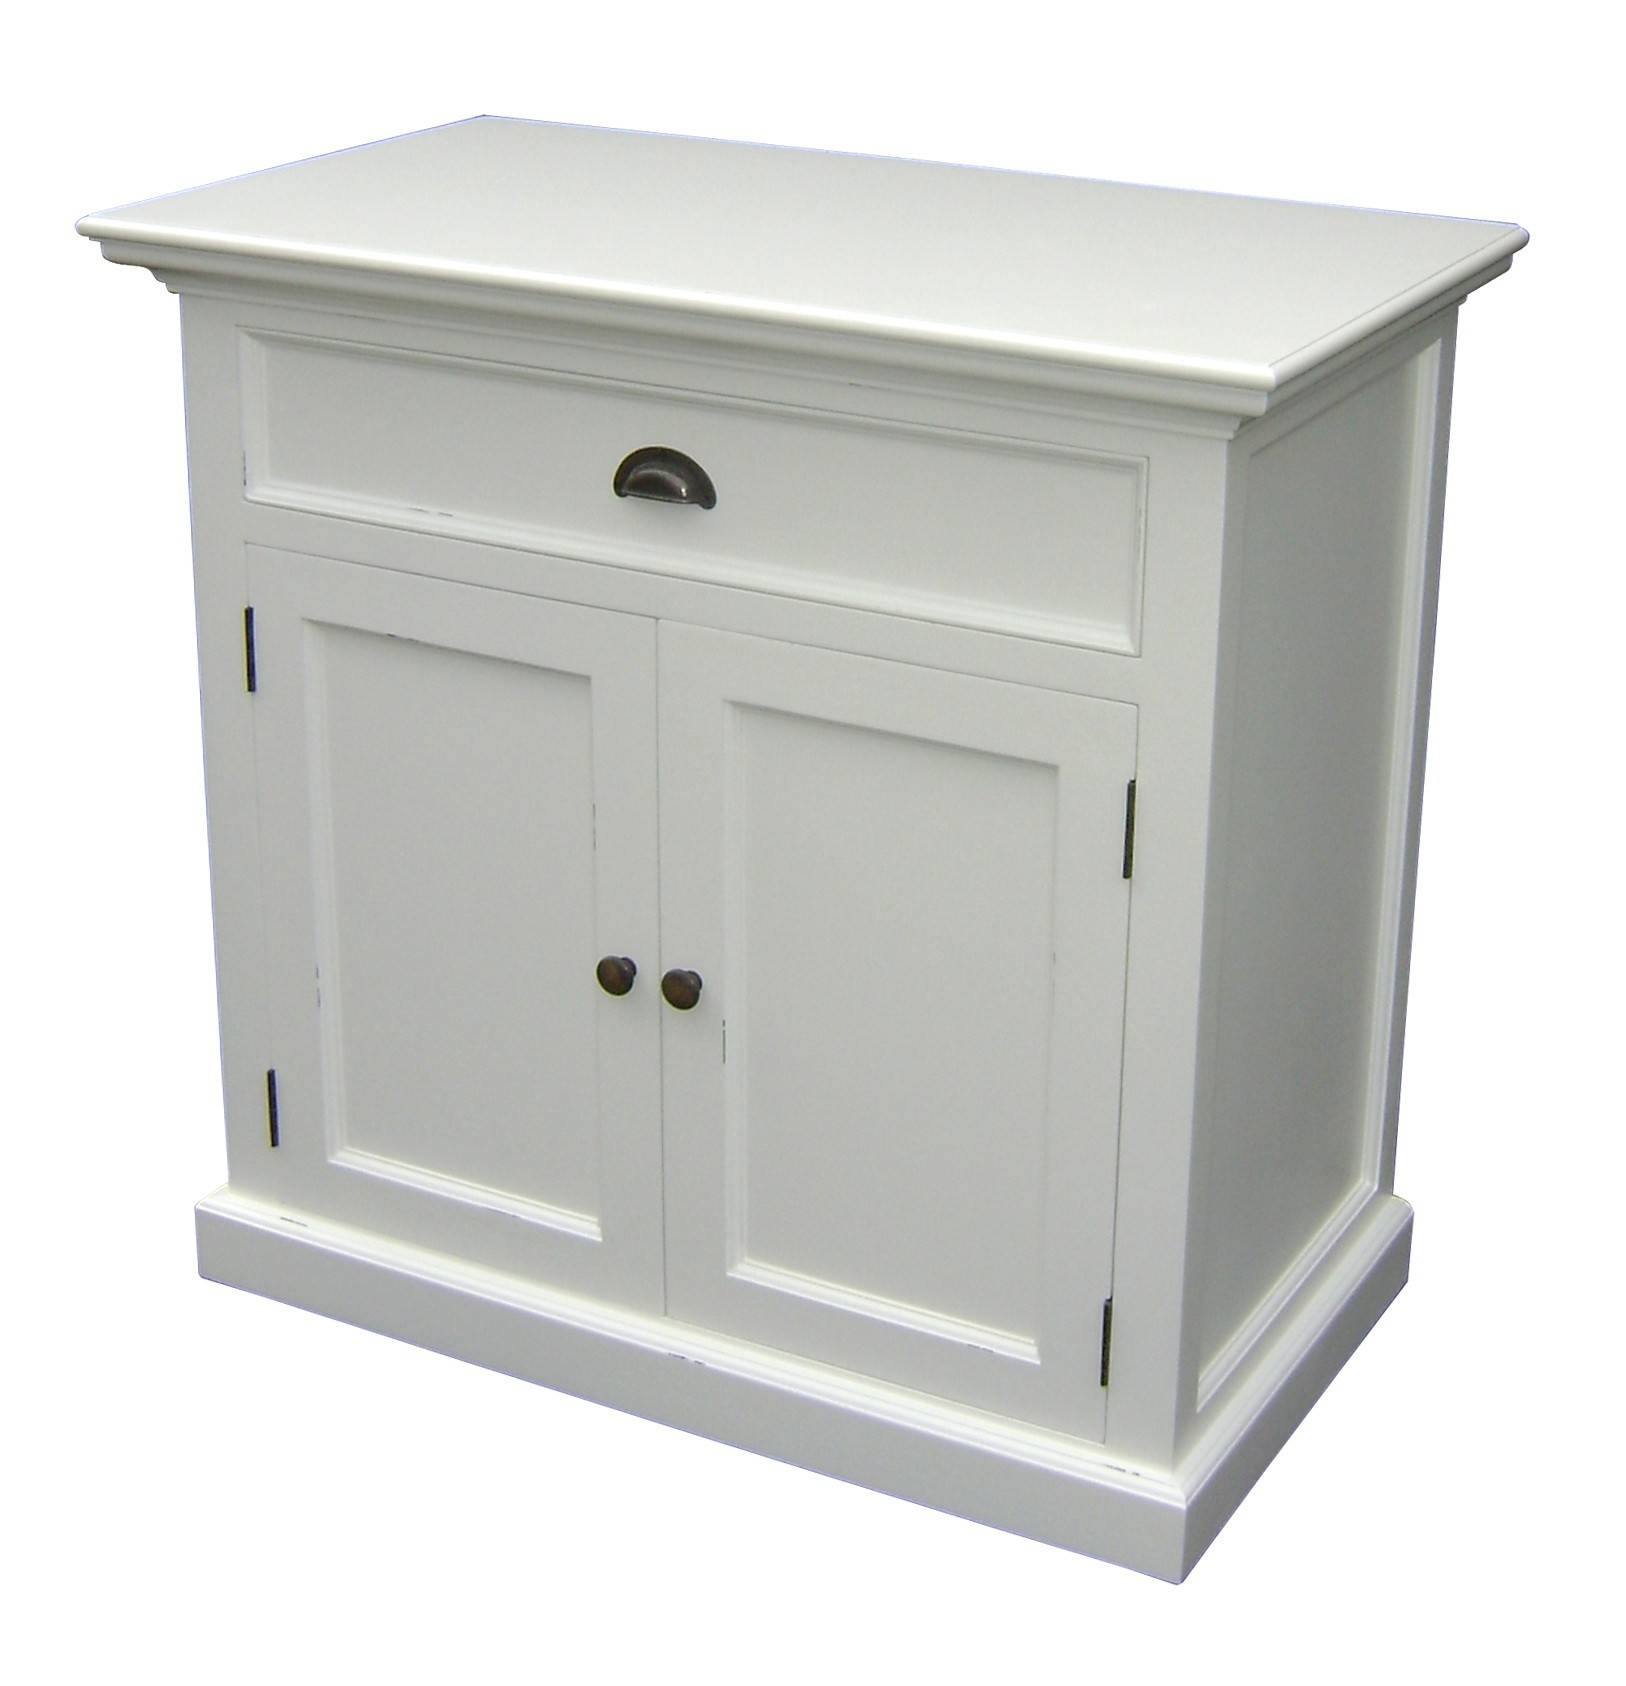 Astonishing Small Dining Room Sideboard Contemporary - 3D House within Narrow White Sideboards (Image 2 of 30)